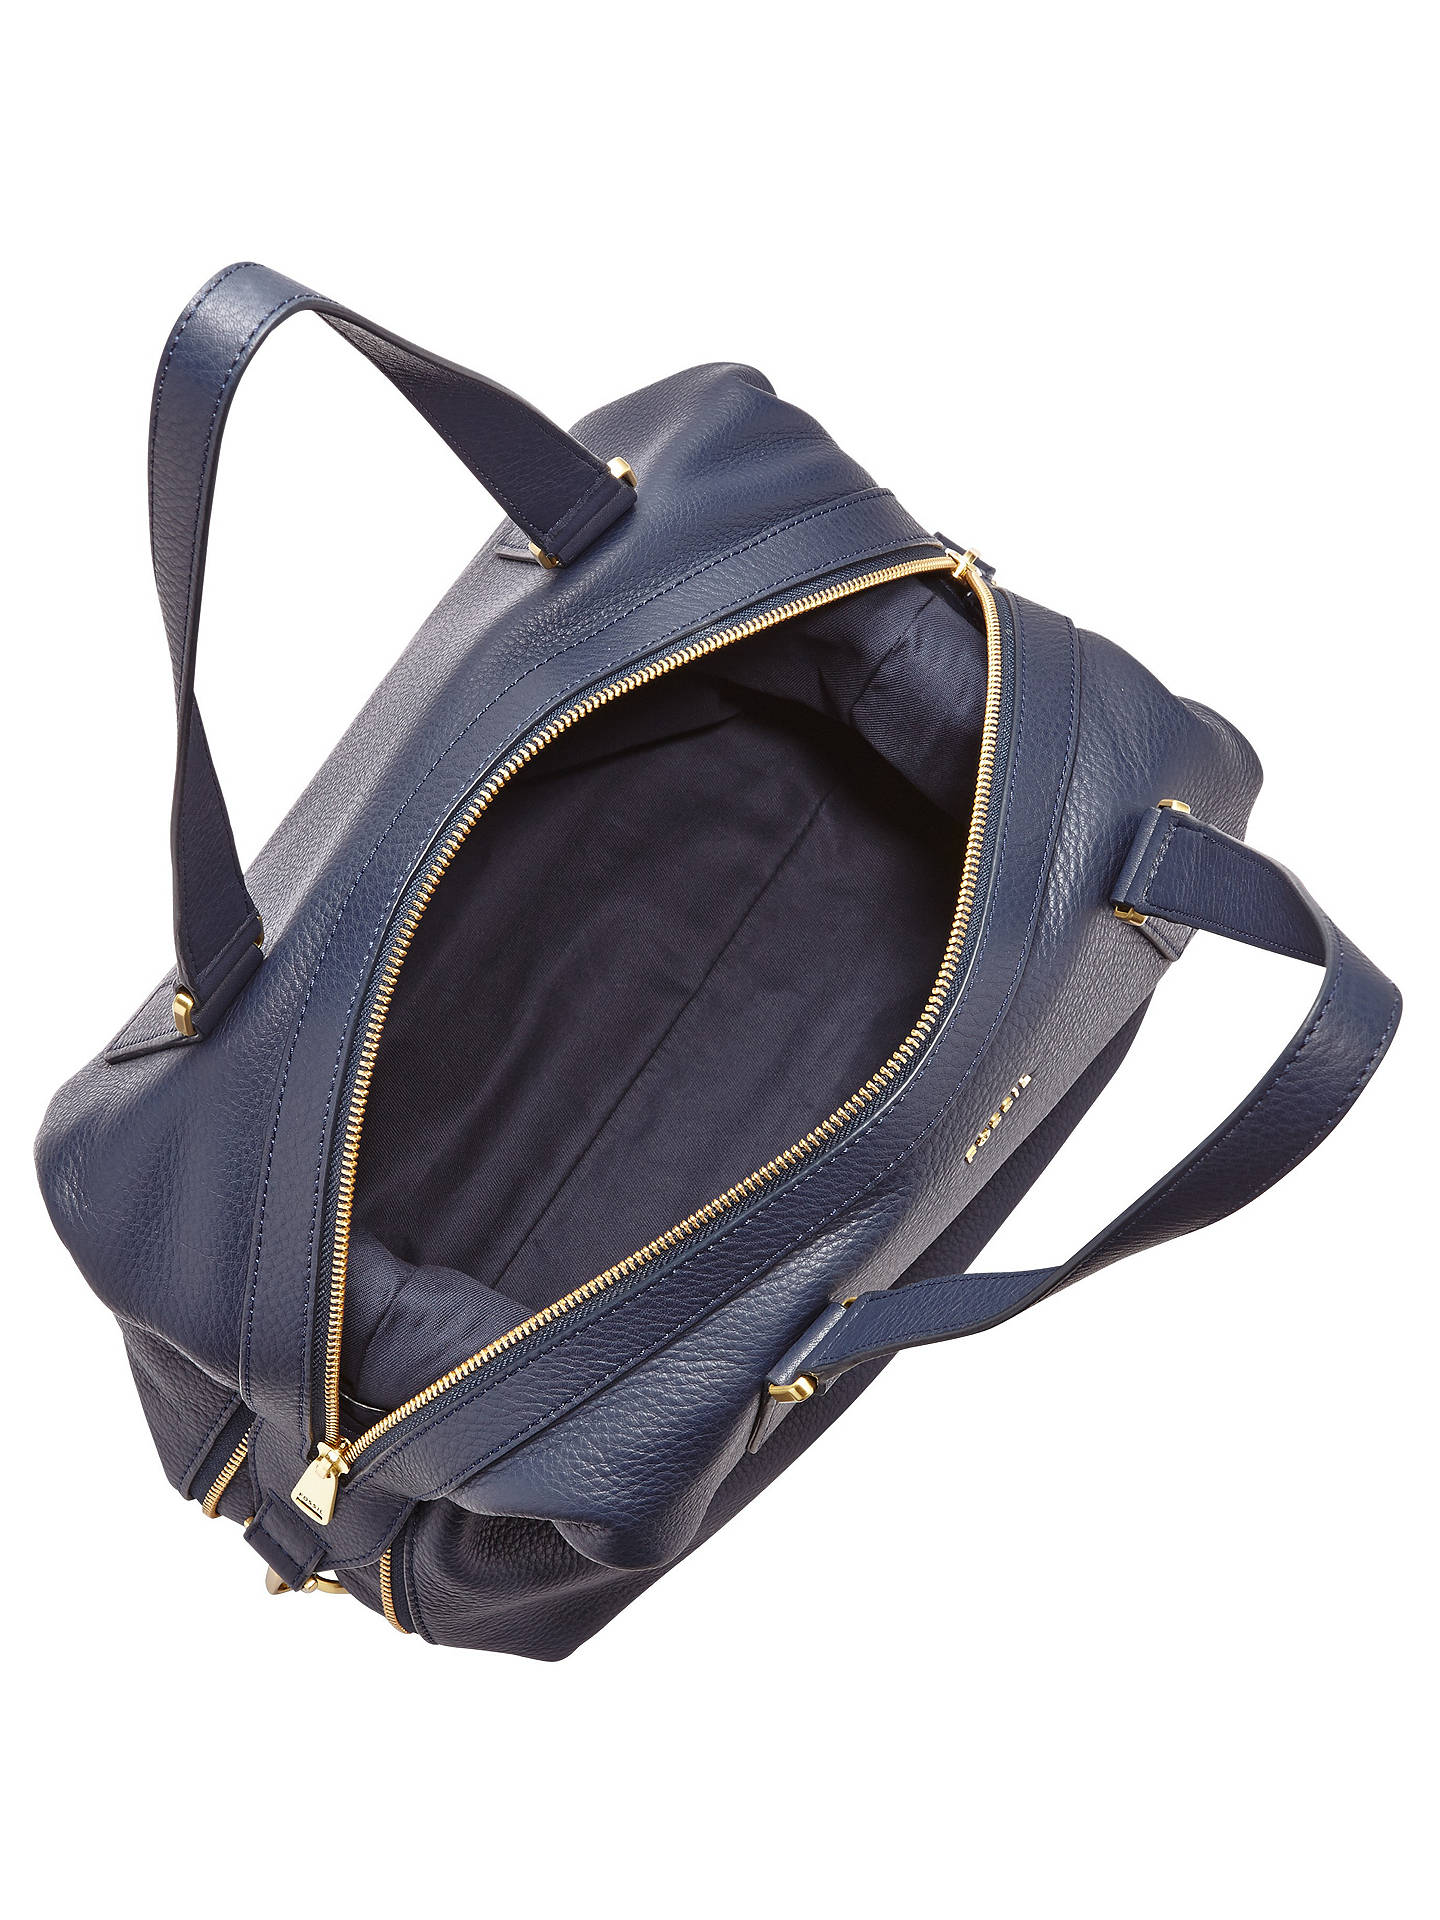 b6c07551a ... Buy Fossil Preston Large Leather Satchel, Navy Online at johnlewis.com